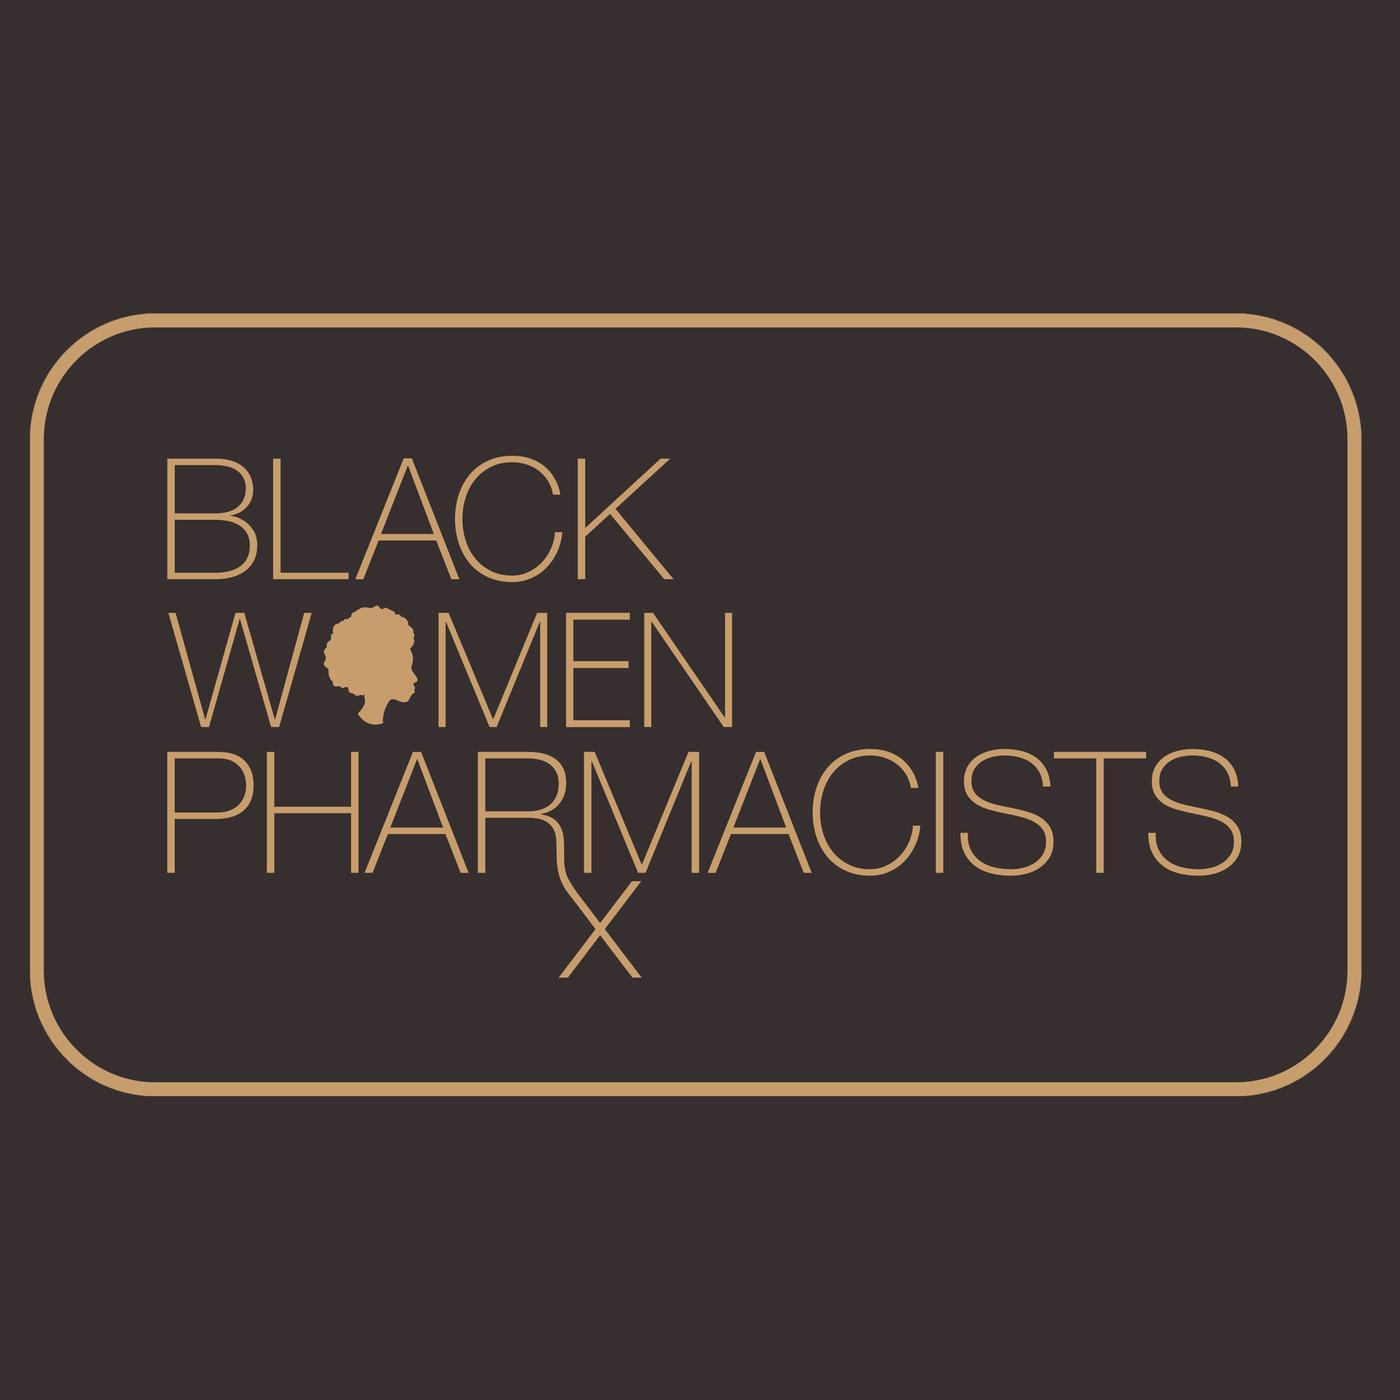 Podcast logo; dark brown square with light brown rectangle outline; text reads Black Women Pharmacists where the o in women is the silhouette of a woman with natural hair and the R in pharmacists is the Rx prescription symbol